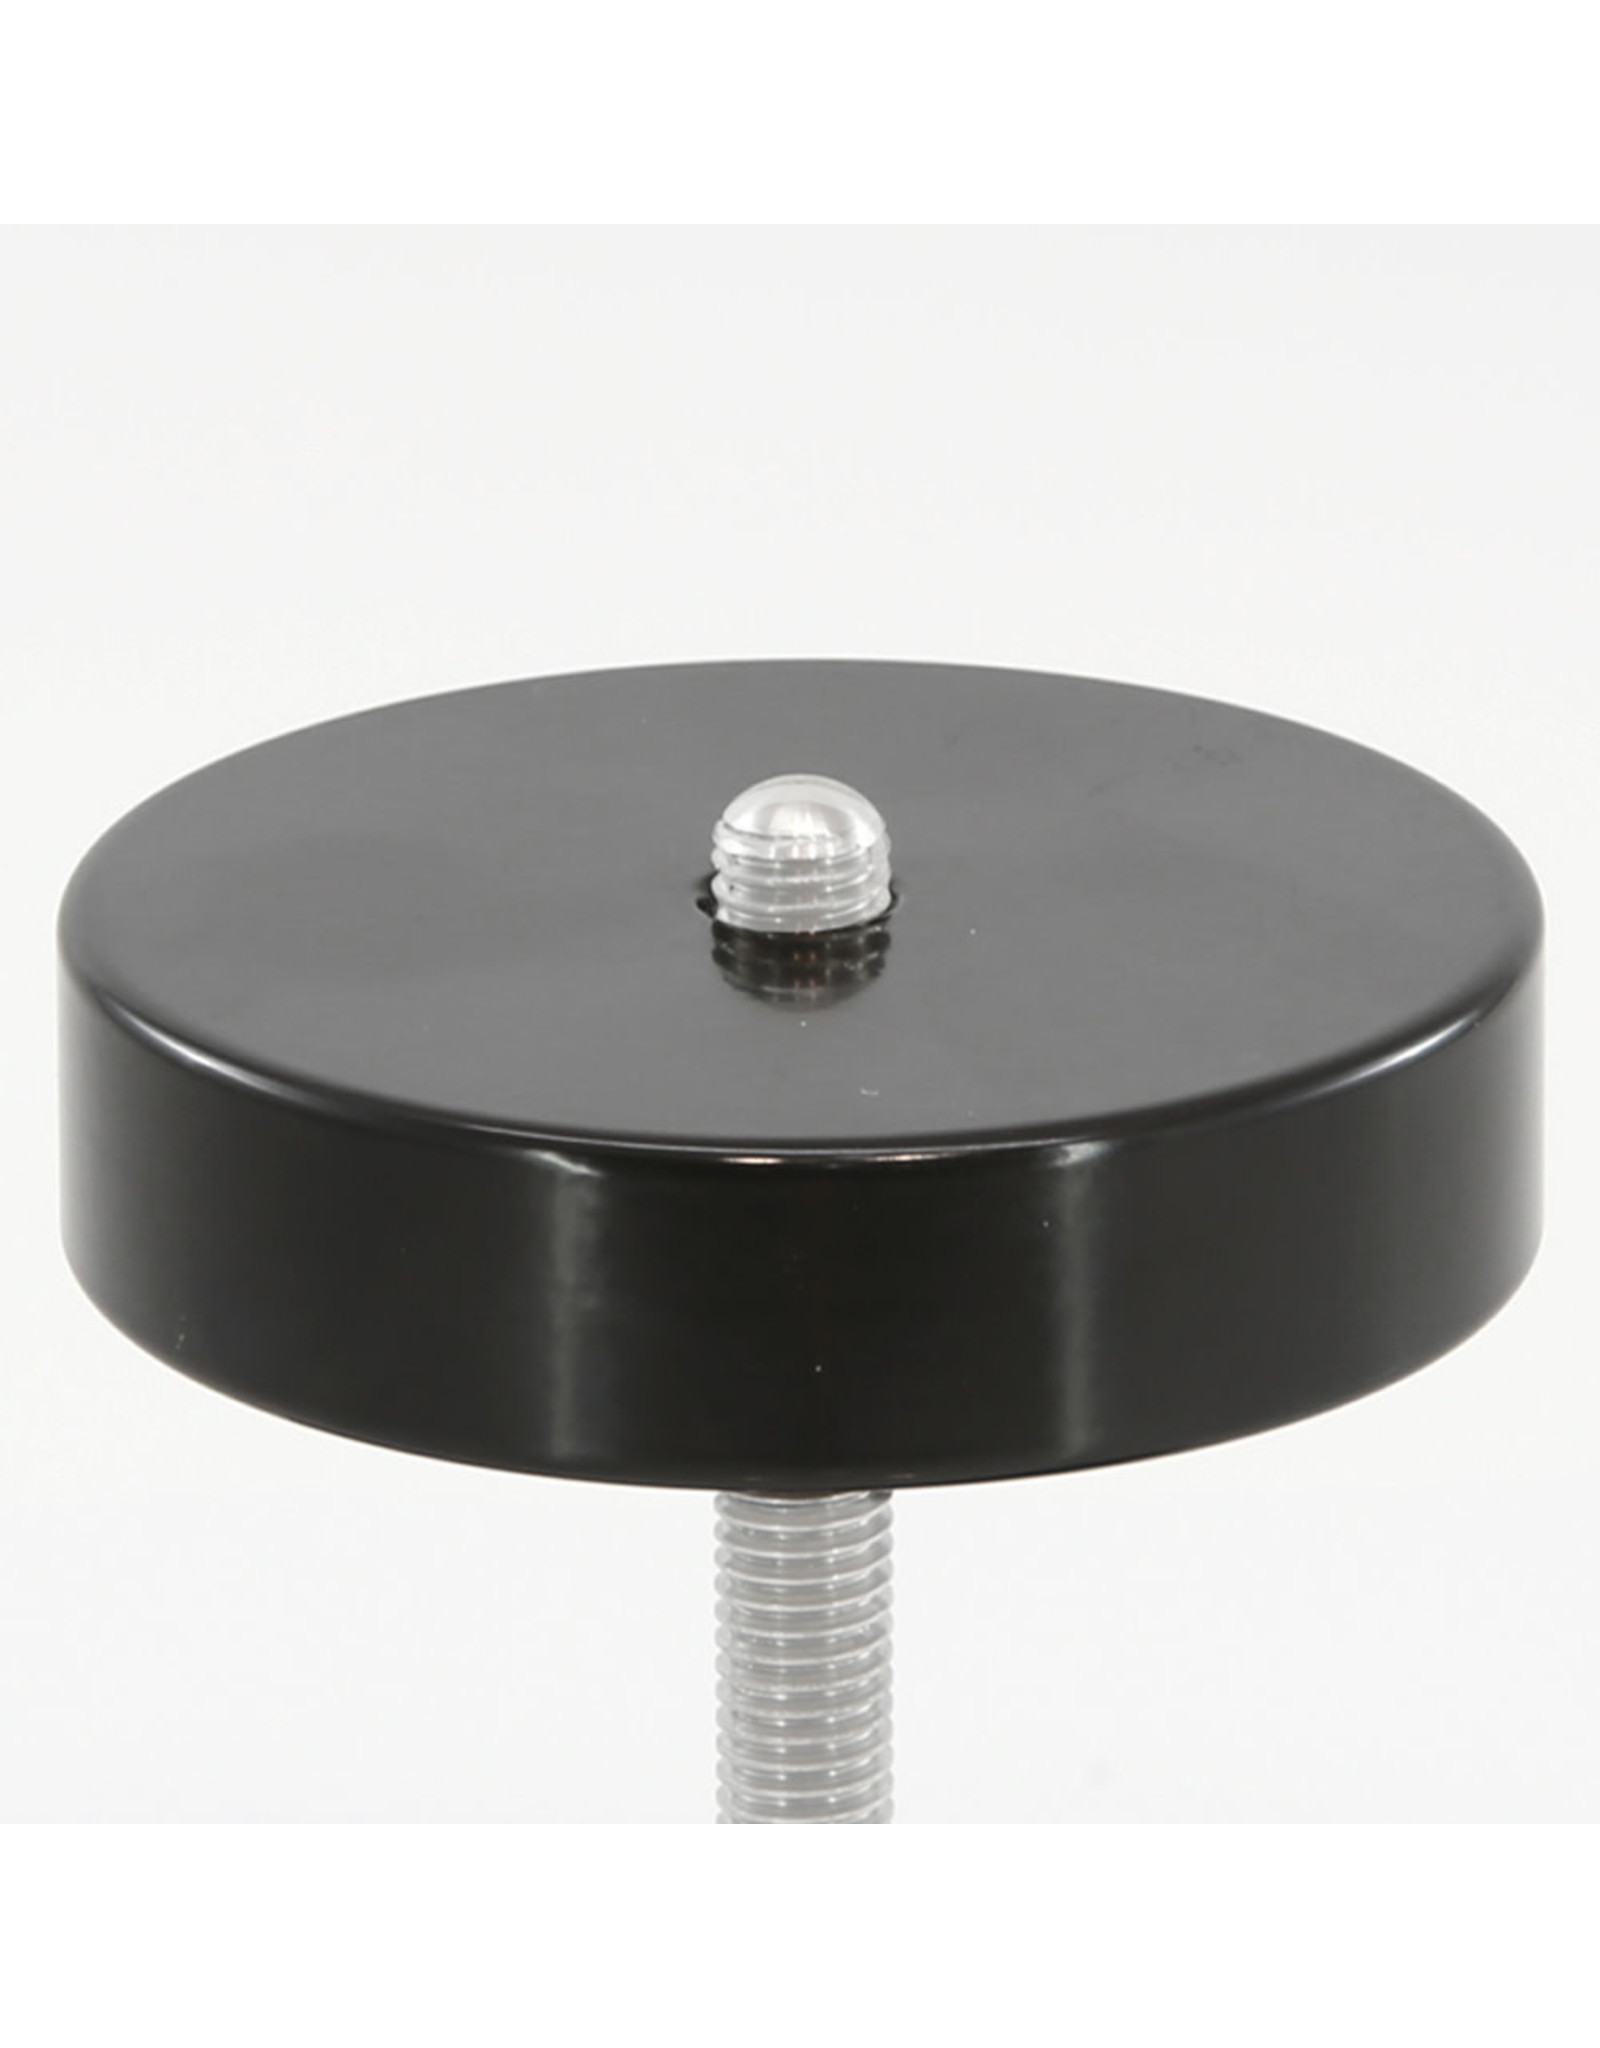 ADM ADM-DVCW-S- D and V Series Counterweight with 3″ Threaded Rod.